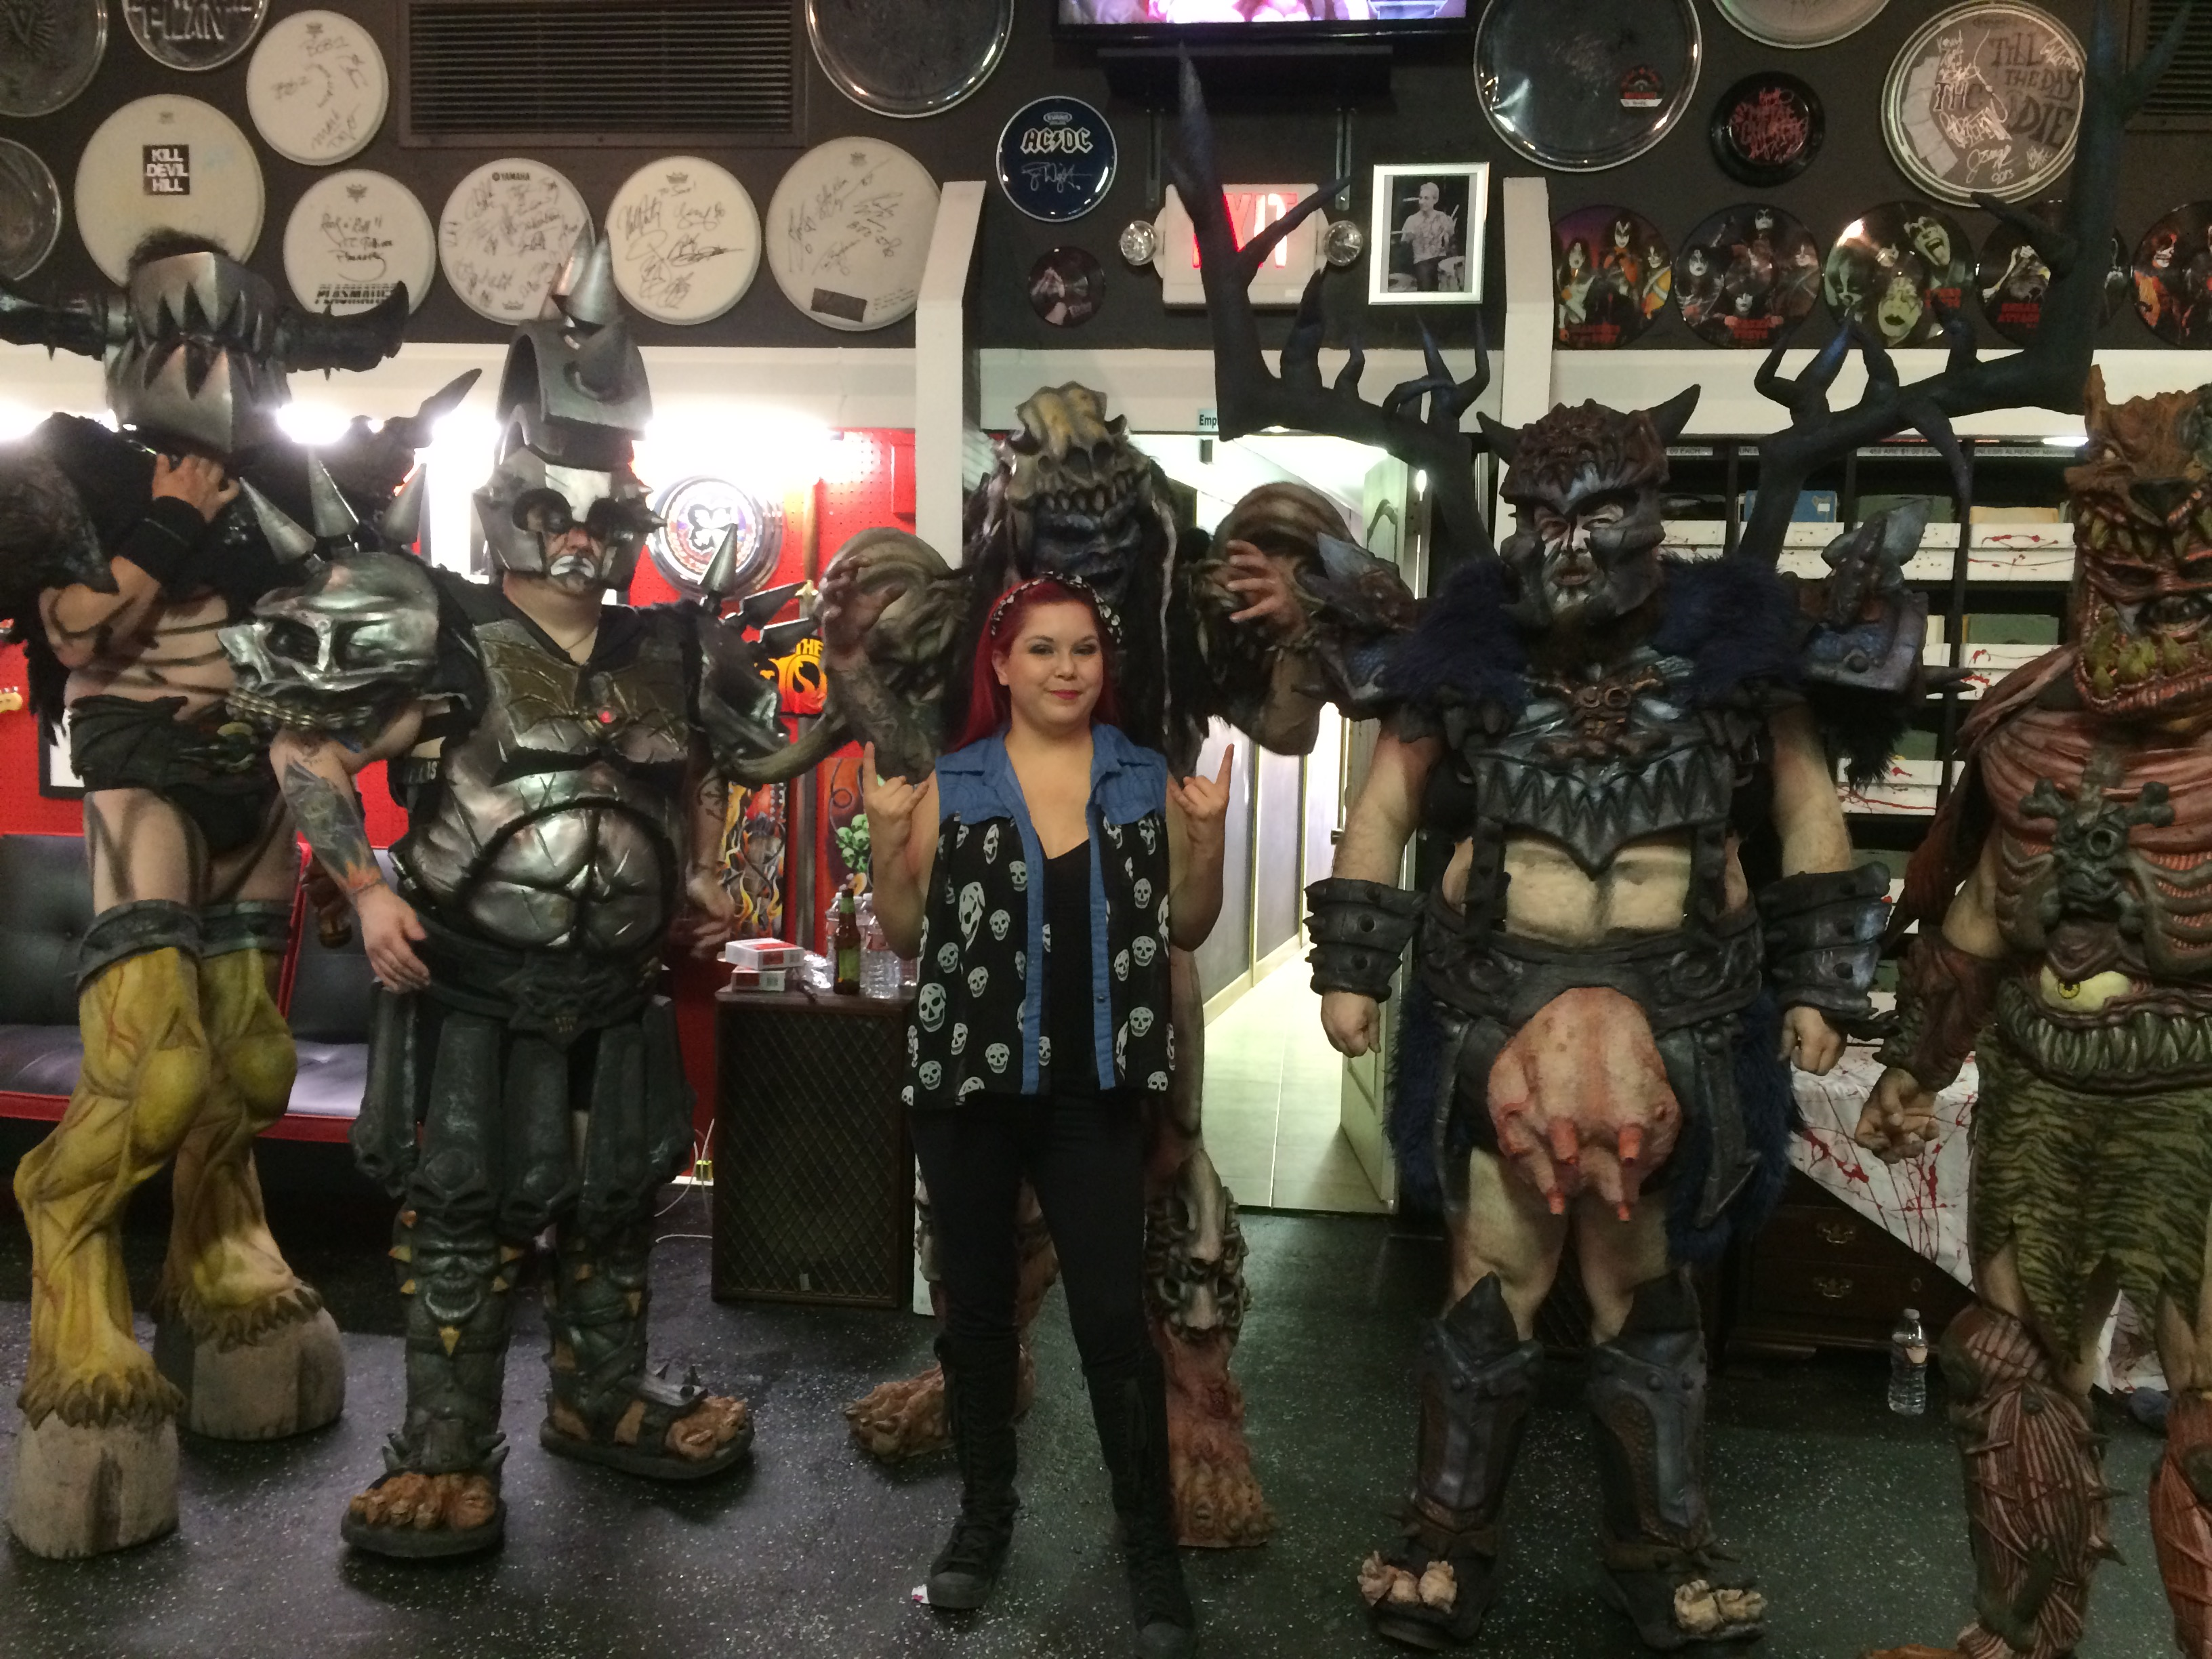 GWAR at Asylum records fro Record Store day 4/18/15